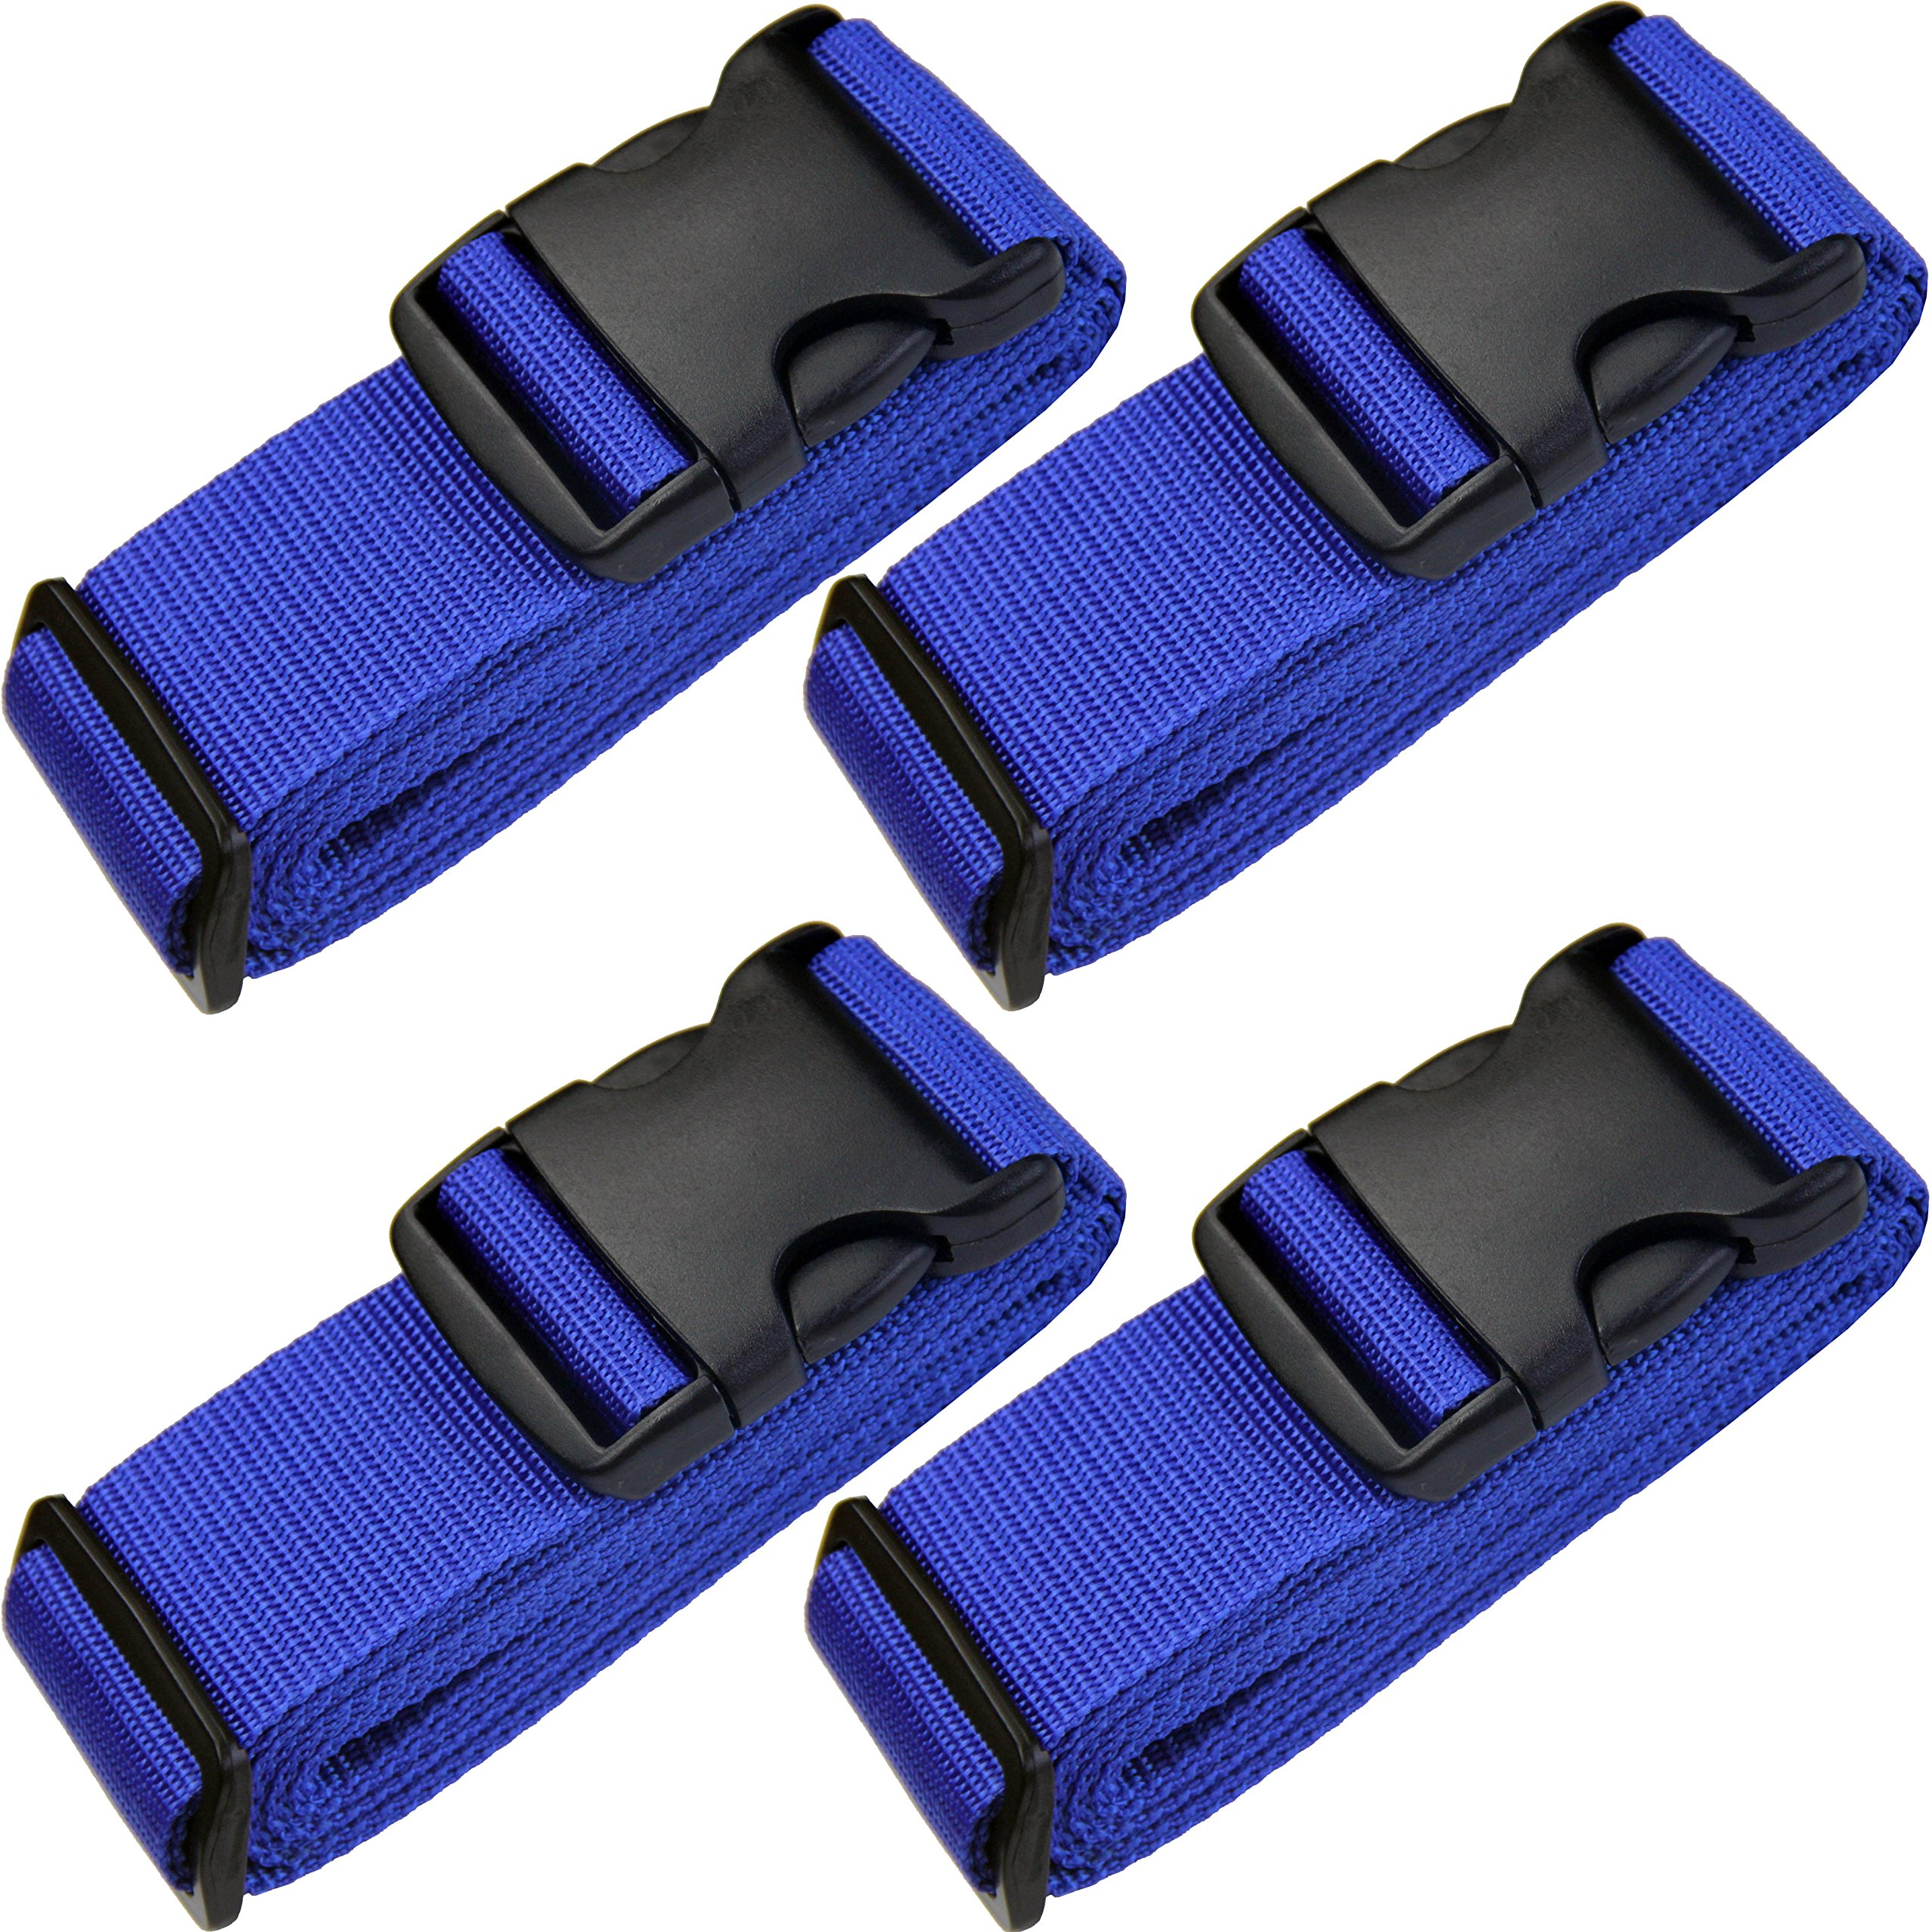 TRANVERS Travel Straps Luggage Strap Suitcases Belt Baggage Strap Sturdy 4-Pack Blue